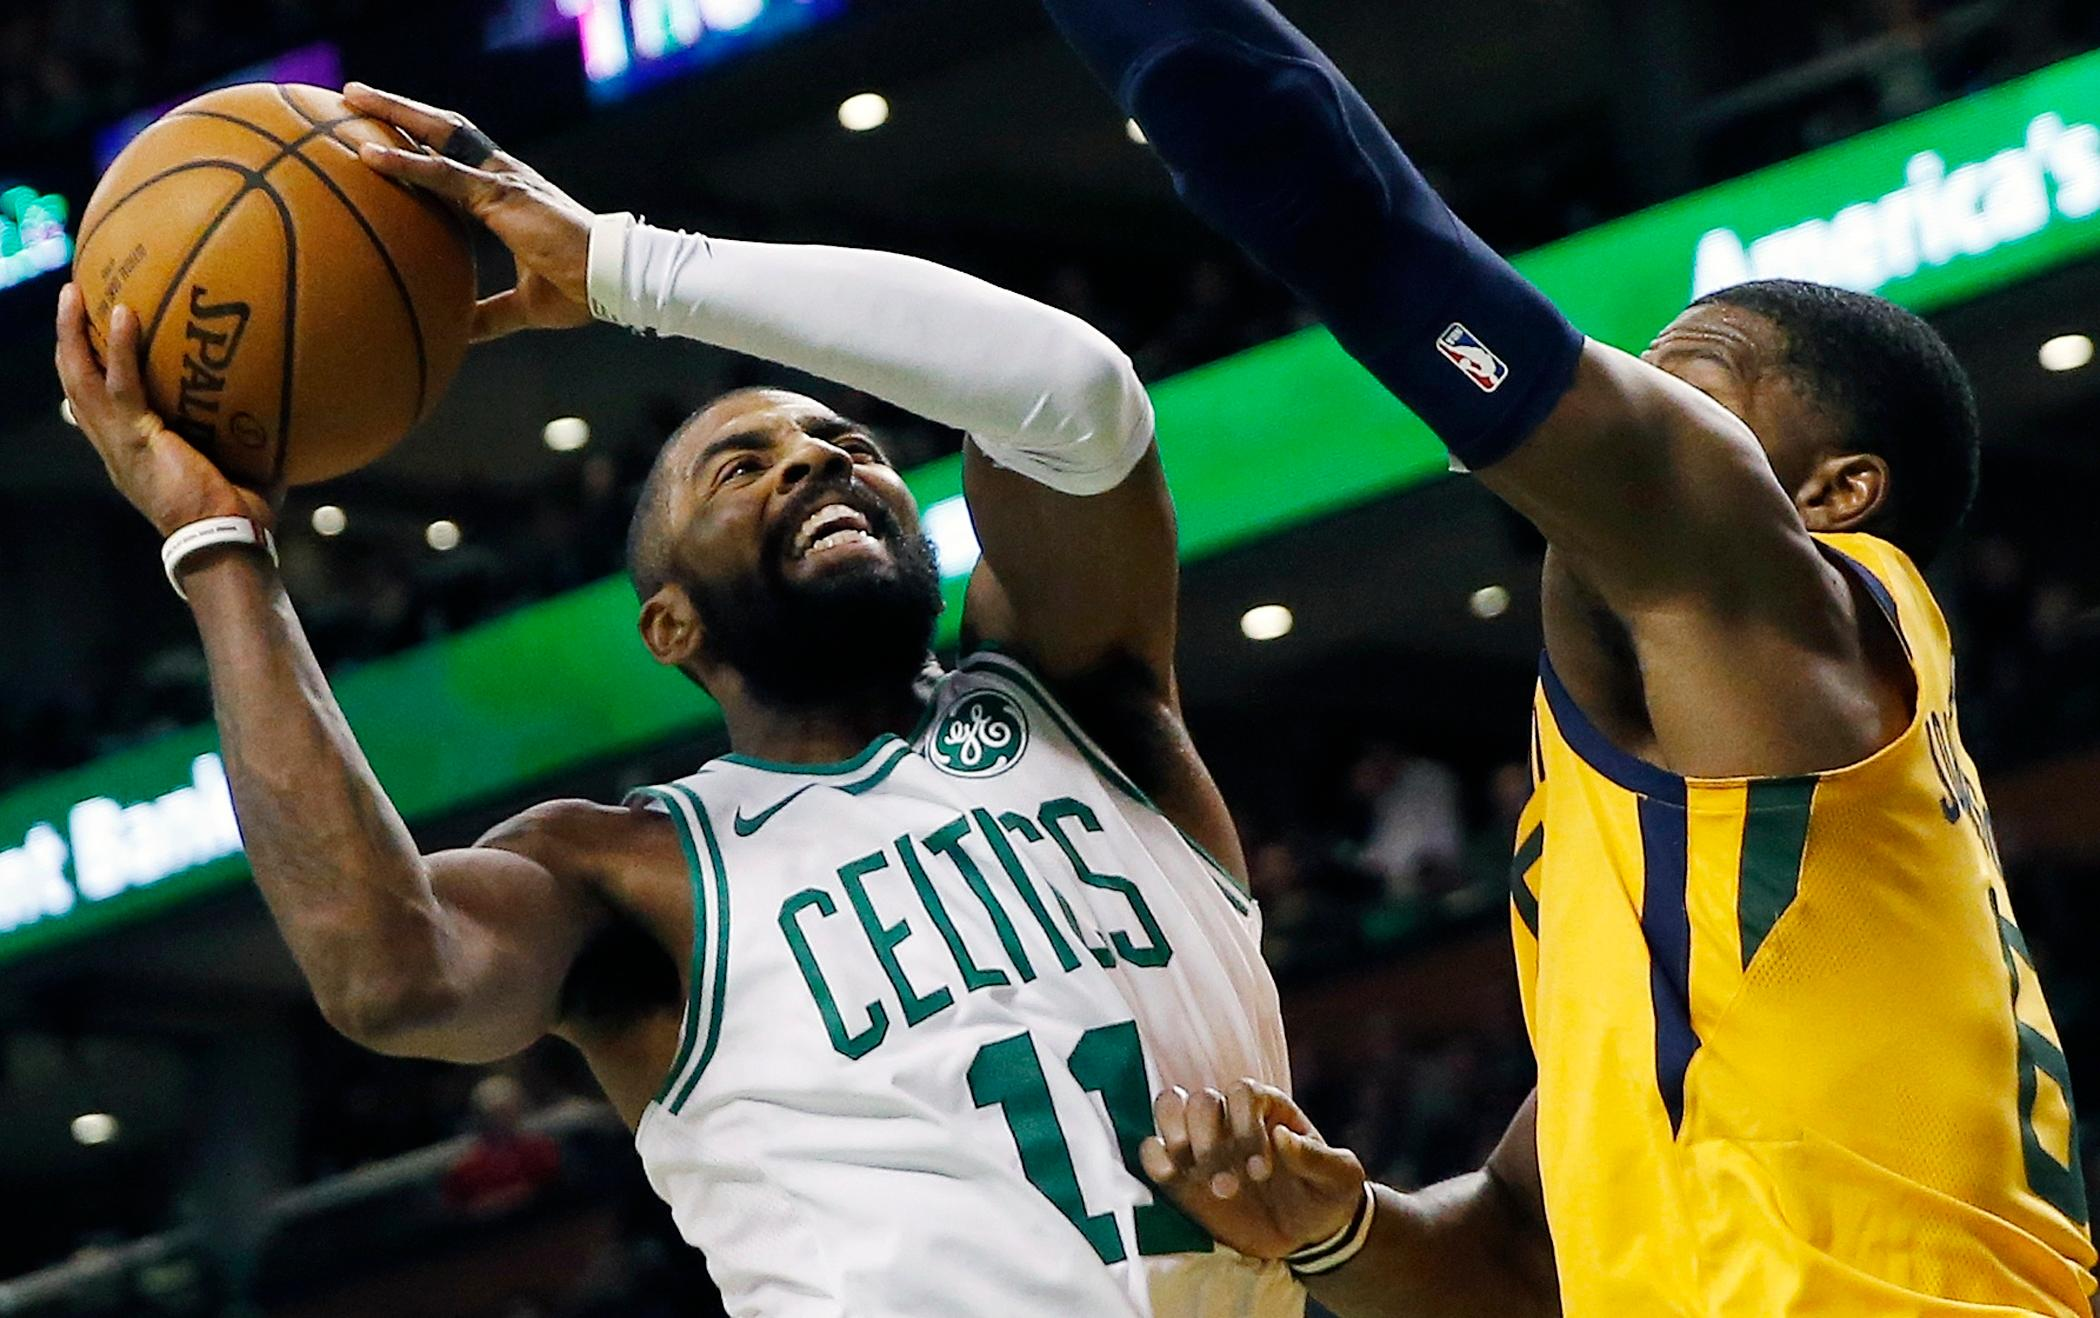 Boston Celtics' Kyrie Irving (11) shoots against Utah Jazz's Joe Johnson (6) during the third quarter of an NBA basketball game in Boston, Friday, Dec. 15, 2017. (AP Photo/Michael Dwyer)